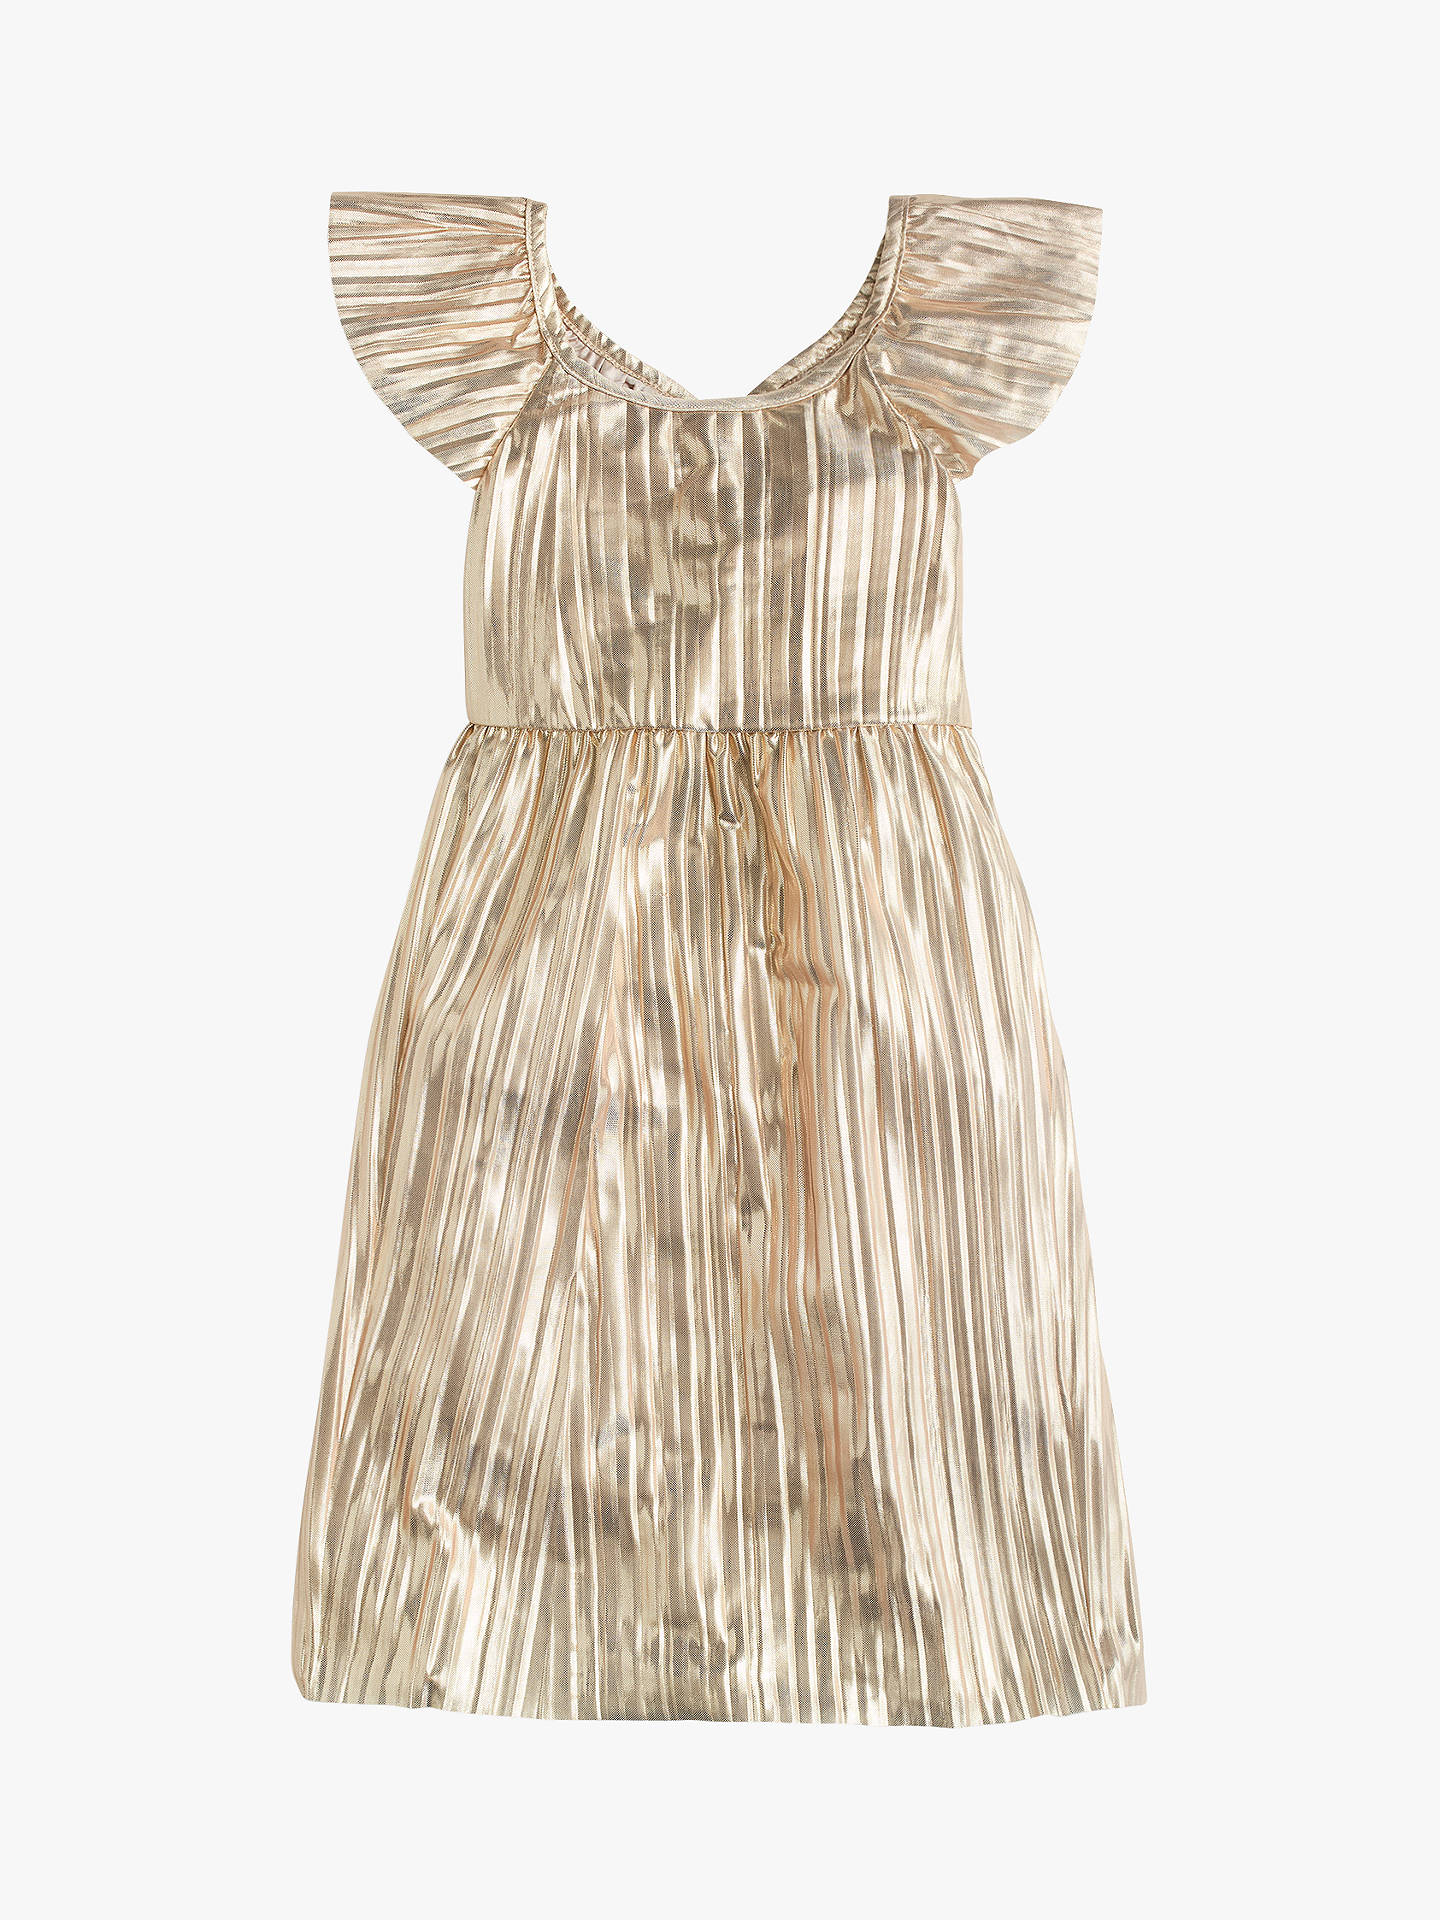 c24de72dd28 Buy crewcuts by J.Crew Girls  Shimmer Dress